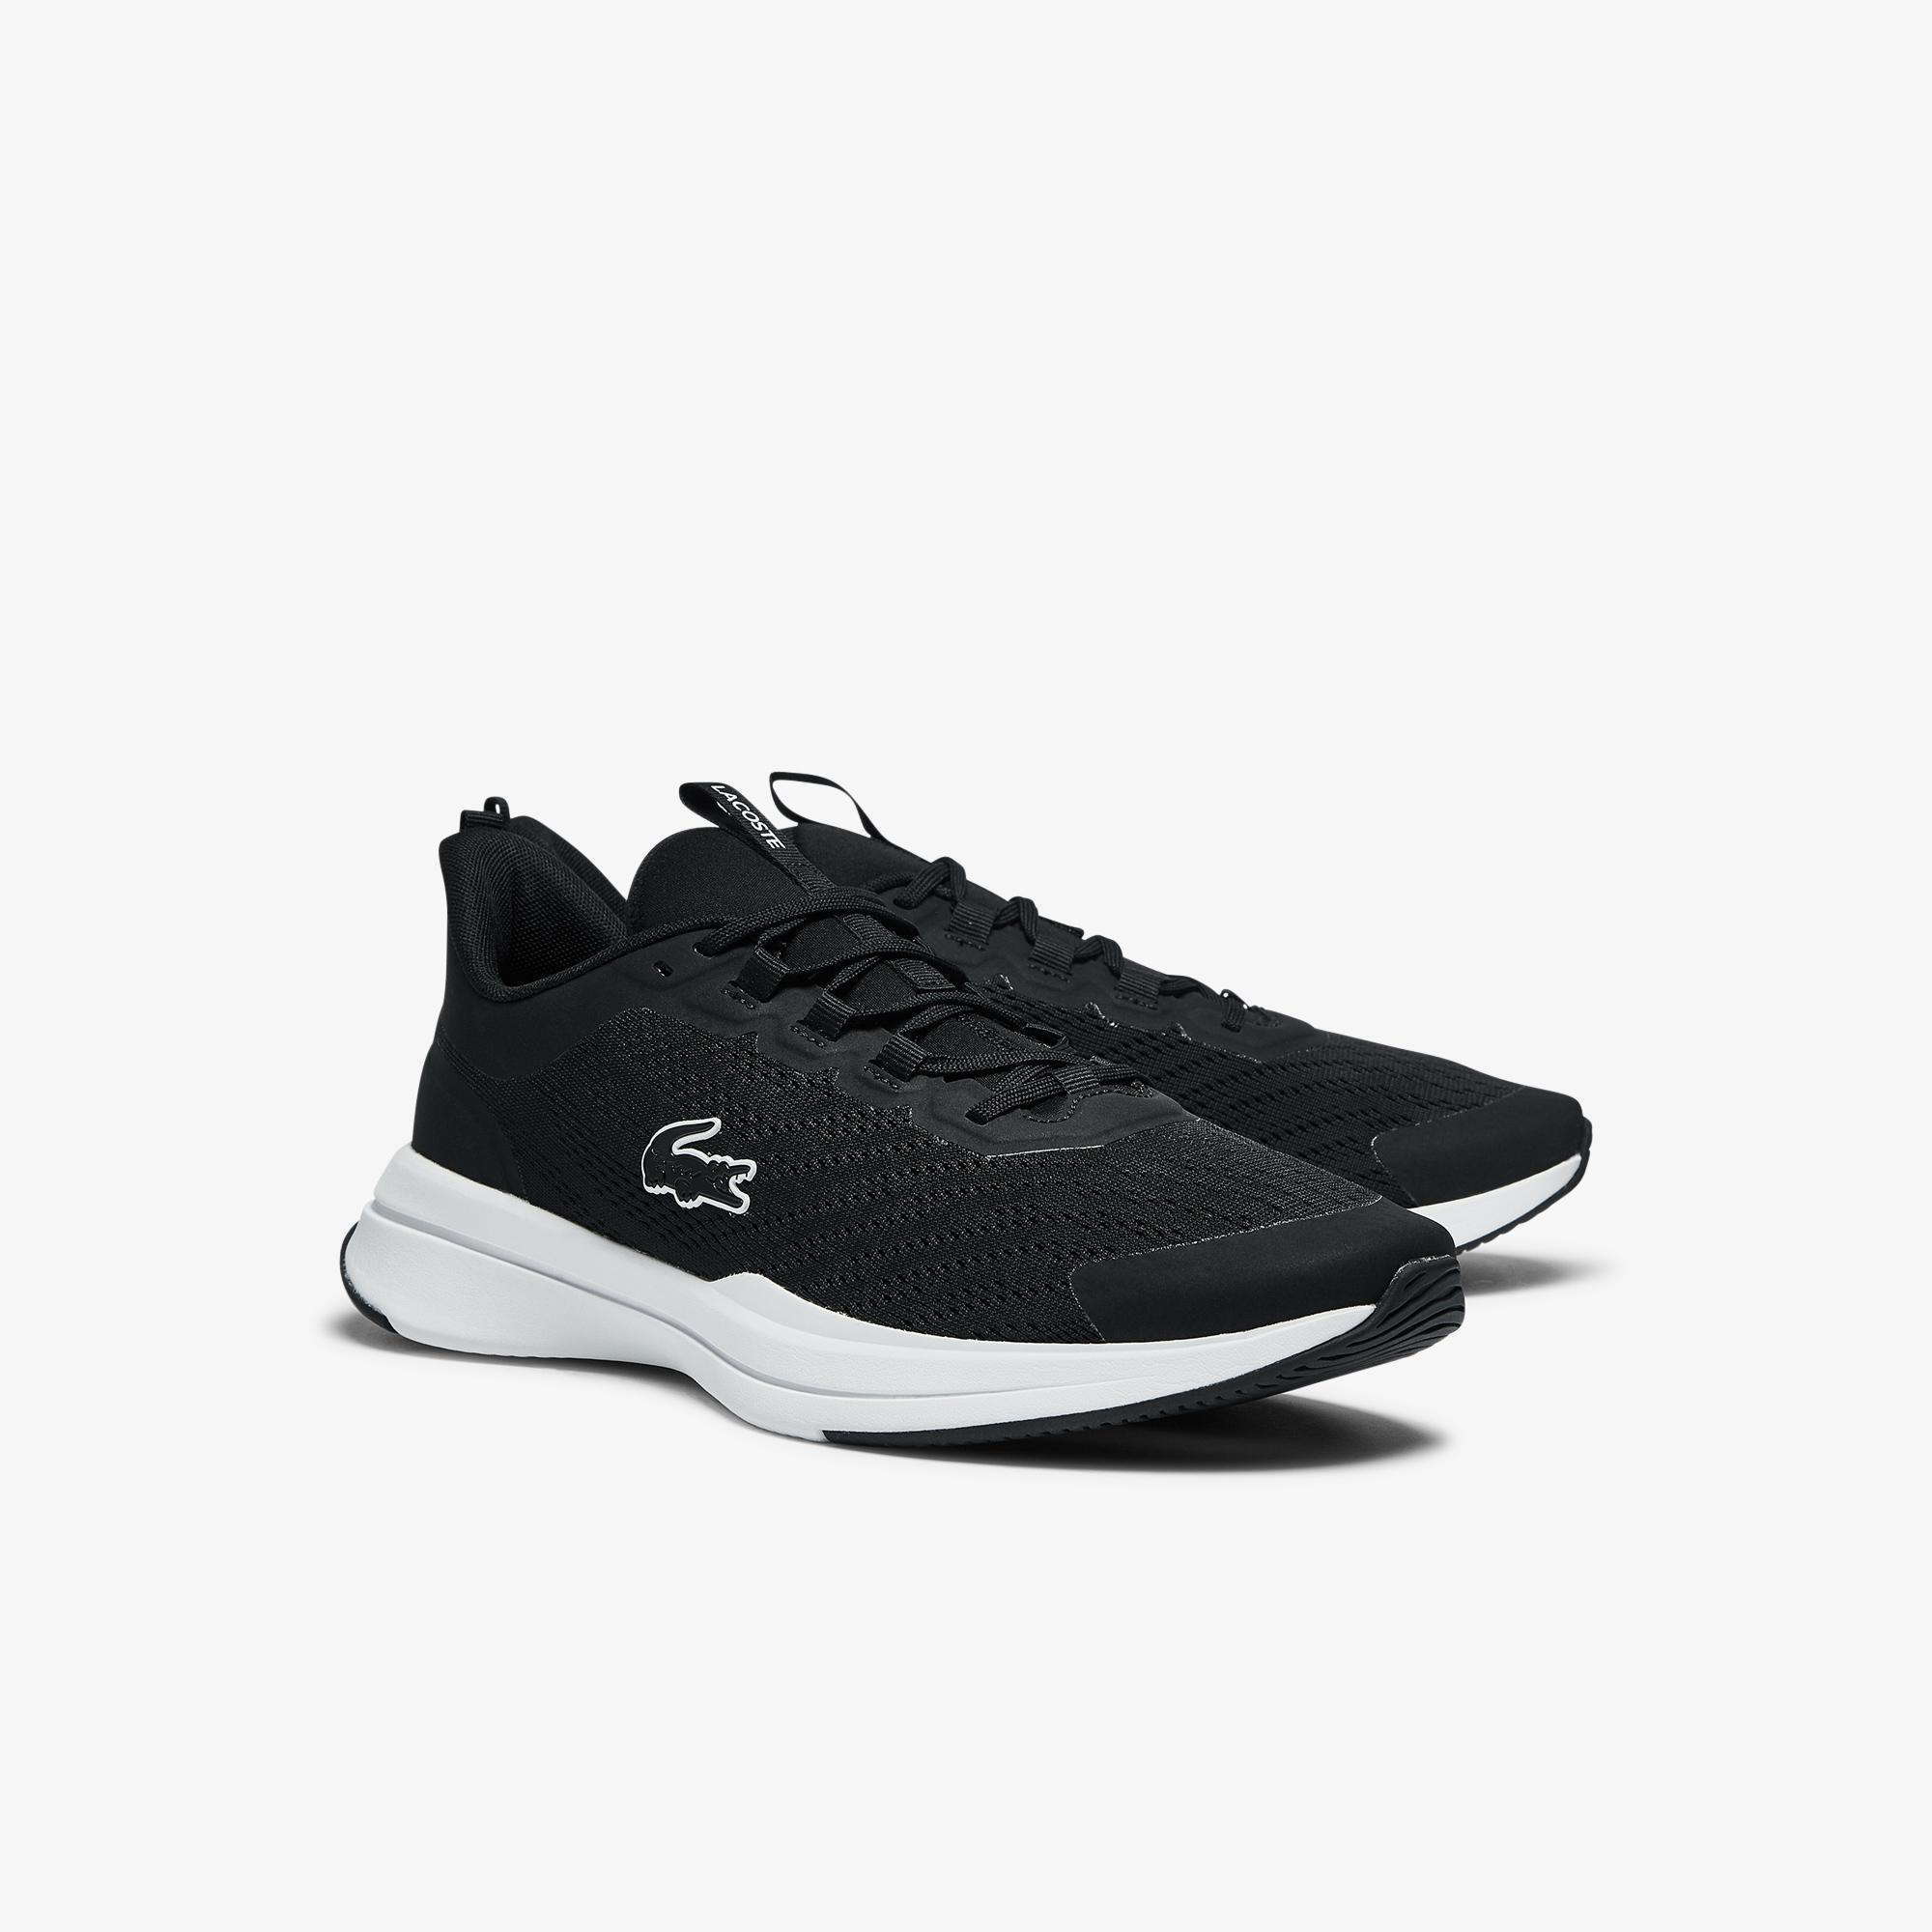 Lacoste Men's Run Spın 0721 1 Sma Shoes